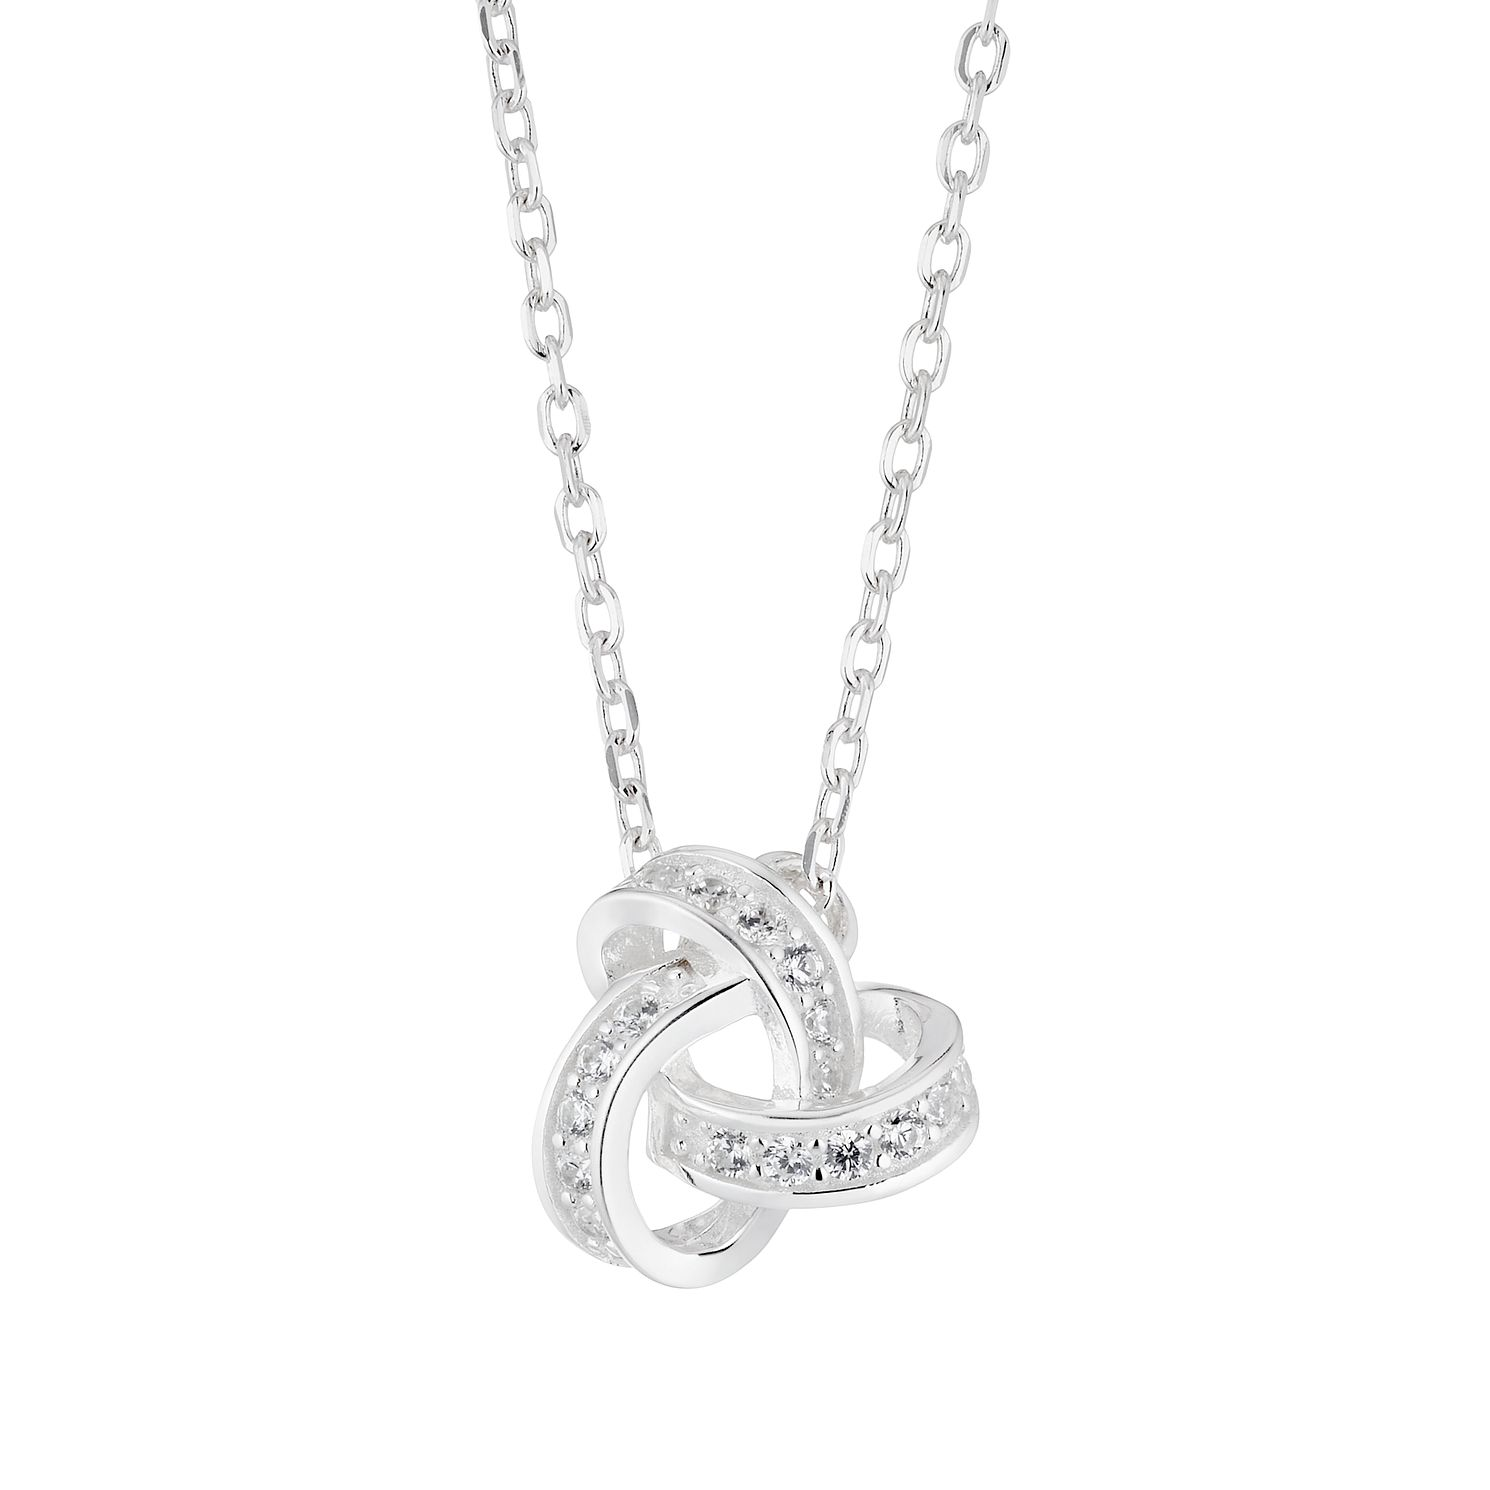 Silver Cubic Zirconia Knot Pendant - Product number 4819225